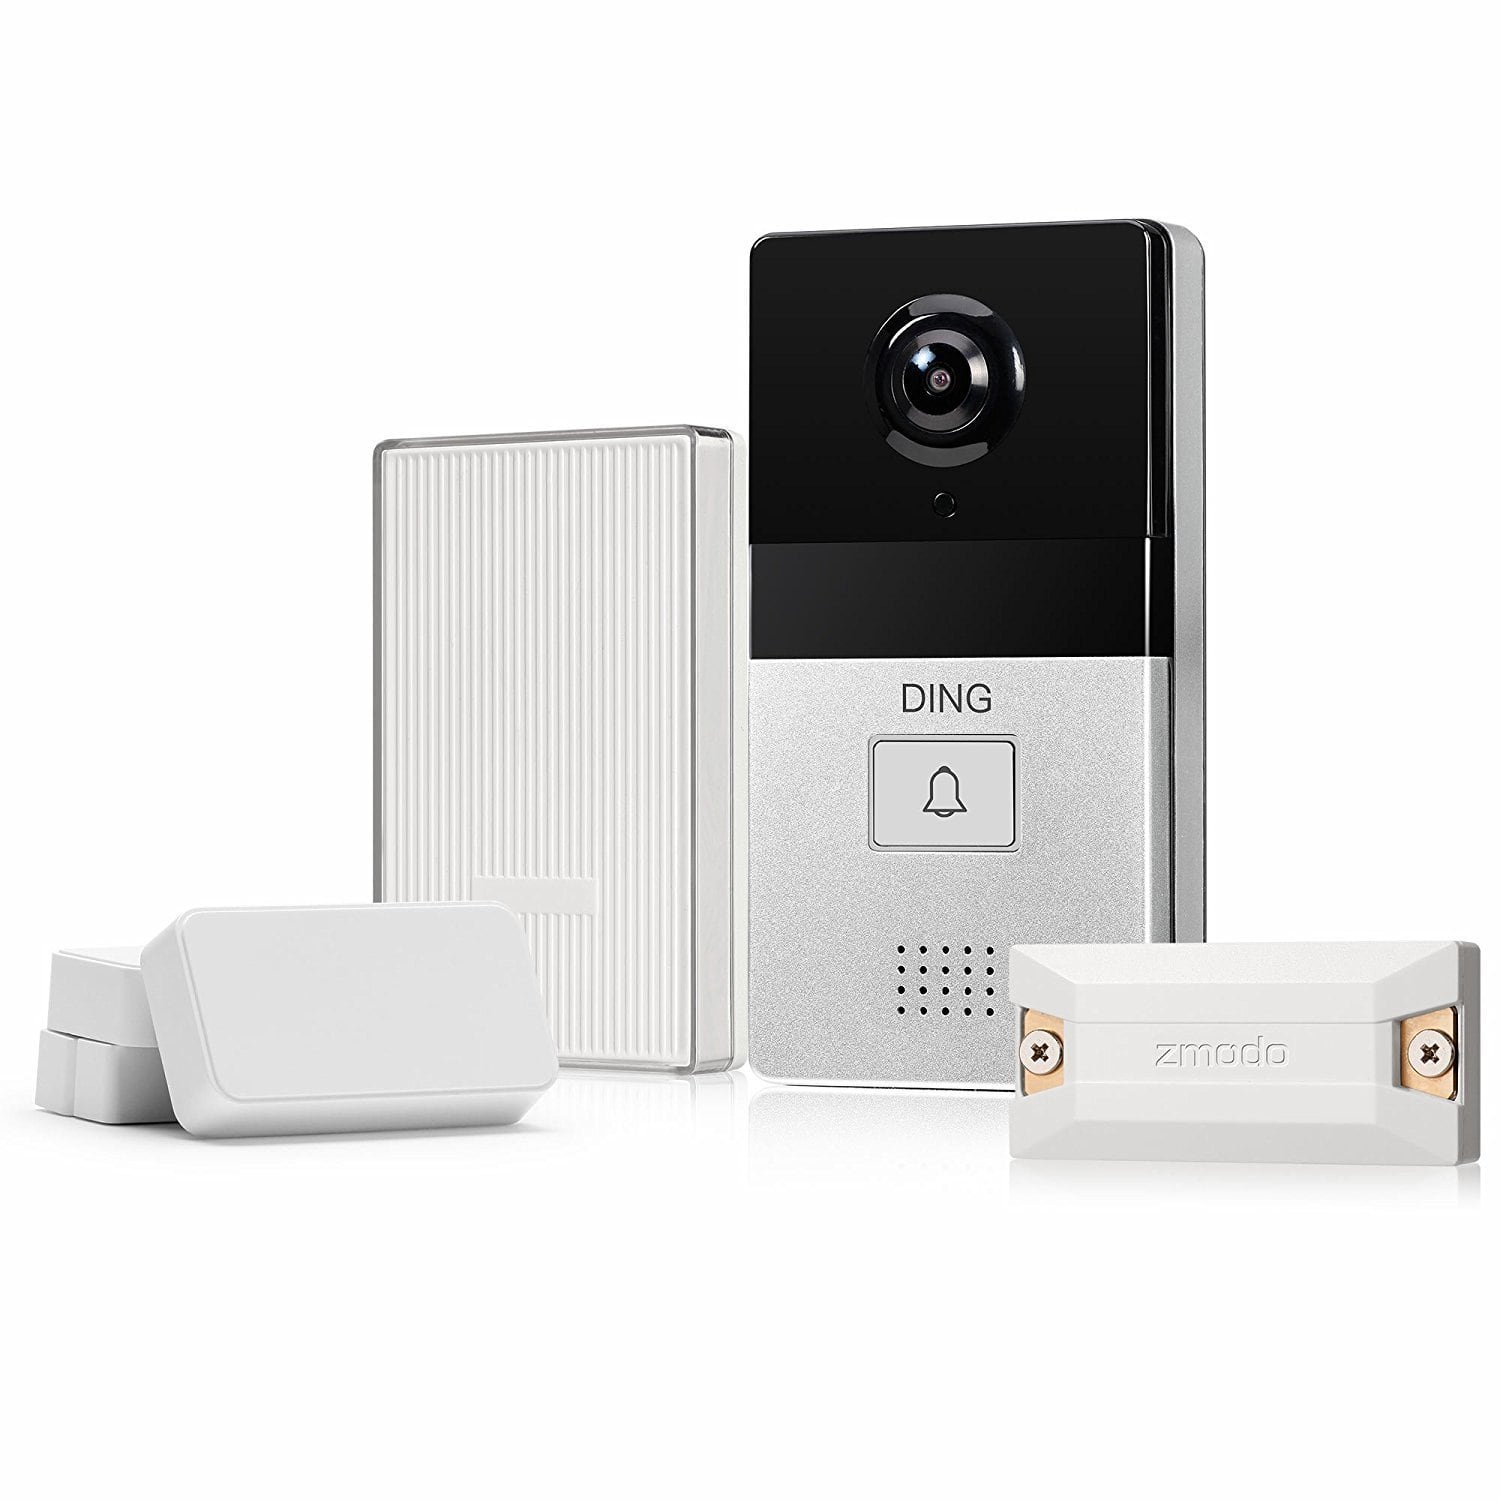 WiFi Video Doorbell +6-Month Cloud Storage +Smart Home Hub +WiFi Extender +2 Pack Door/Window Sensors $46.99